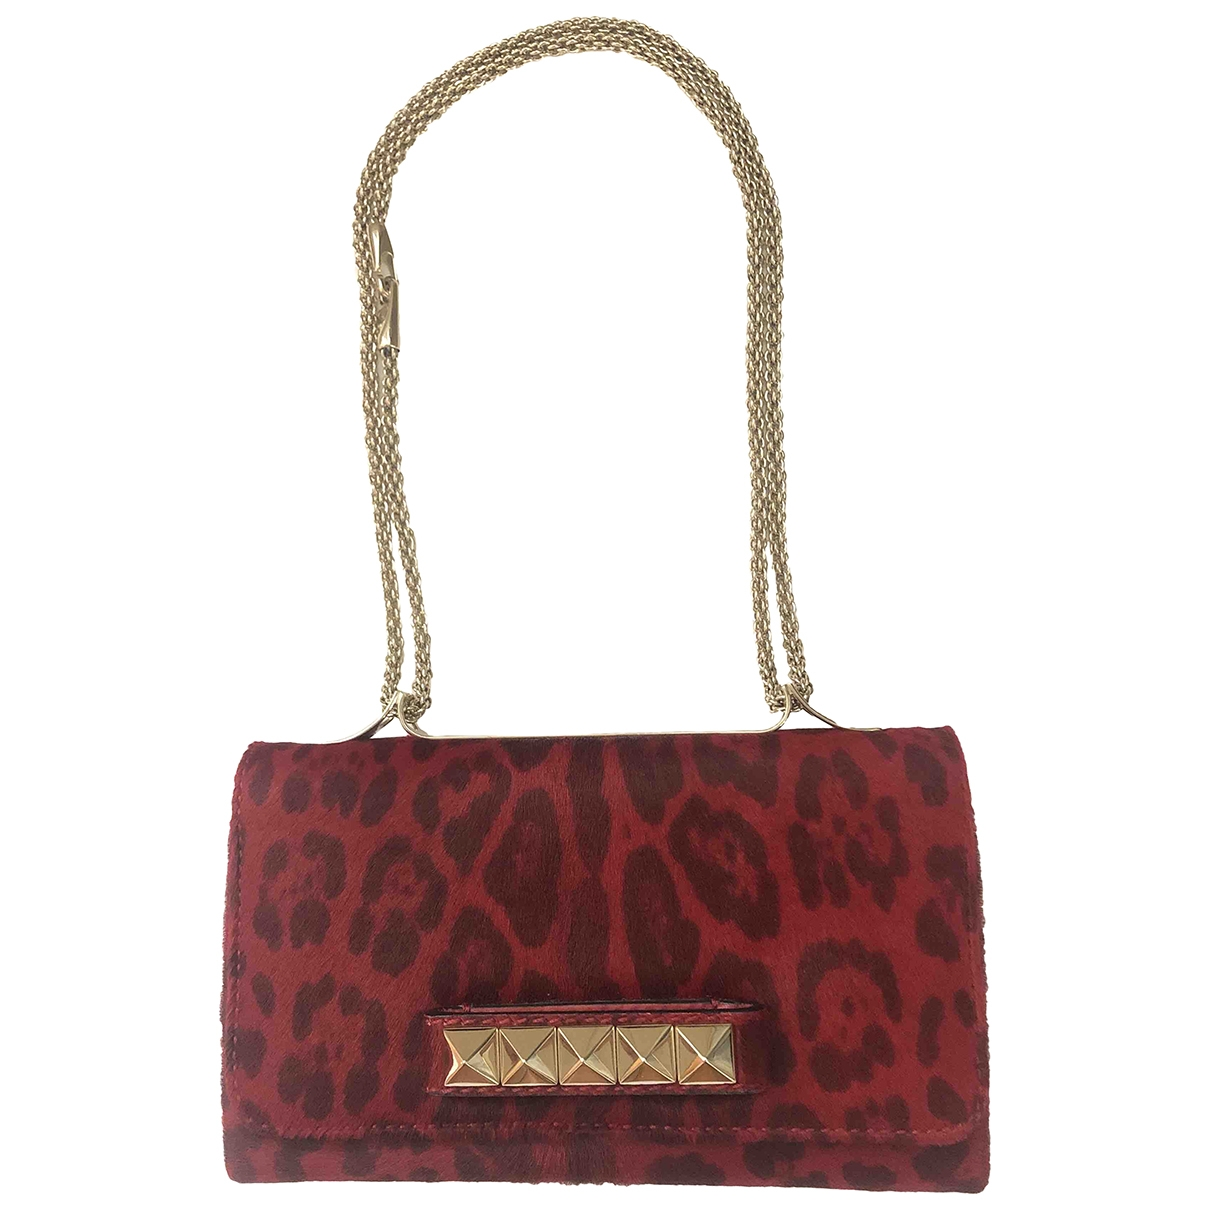 Valentino Garavani Vavavoom Red Pony-style calfskin handbag for Women \N